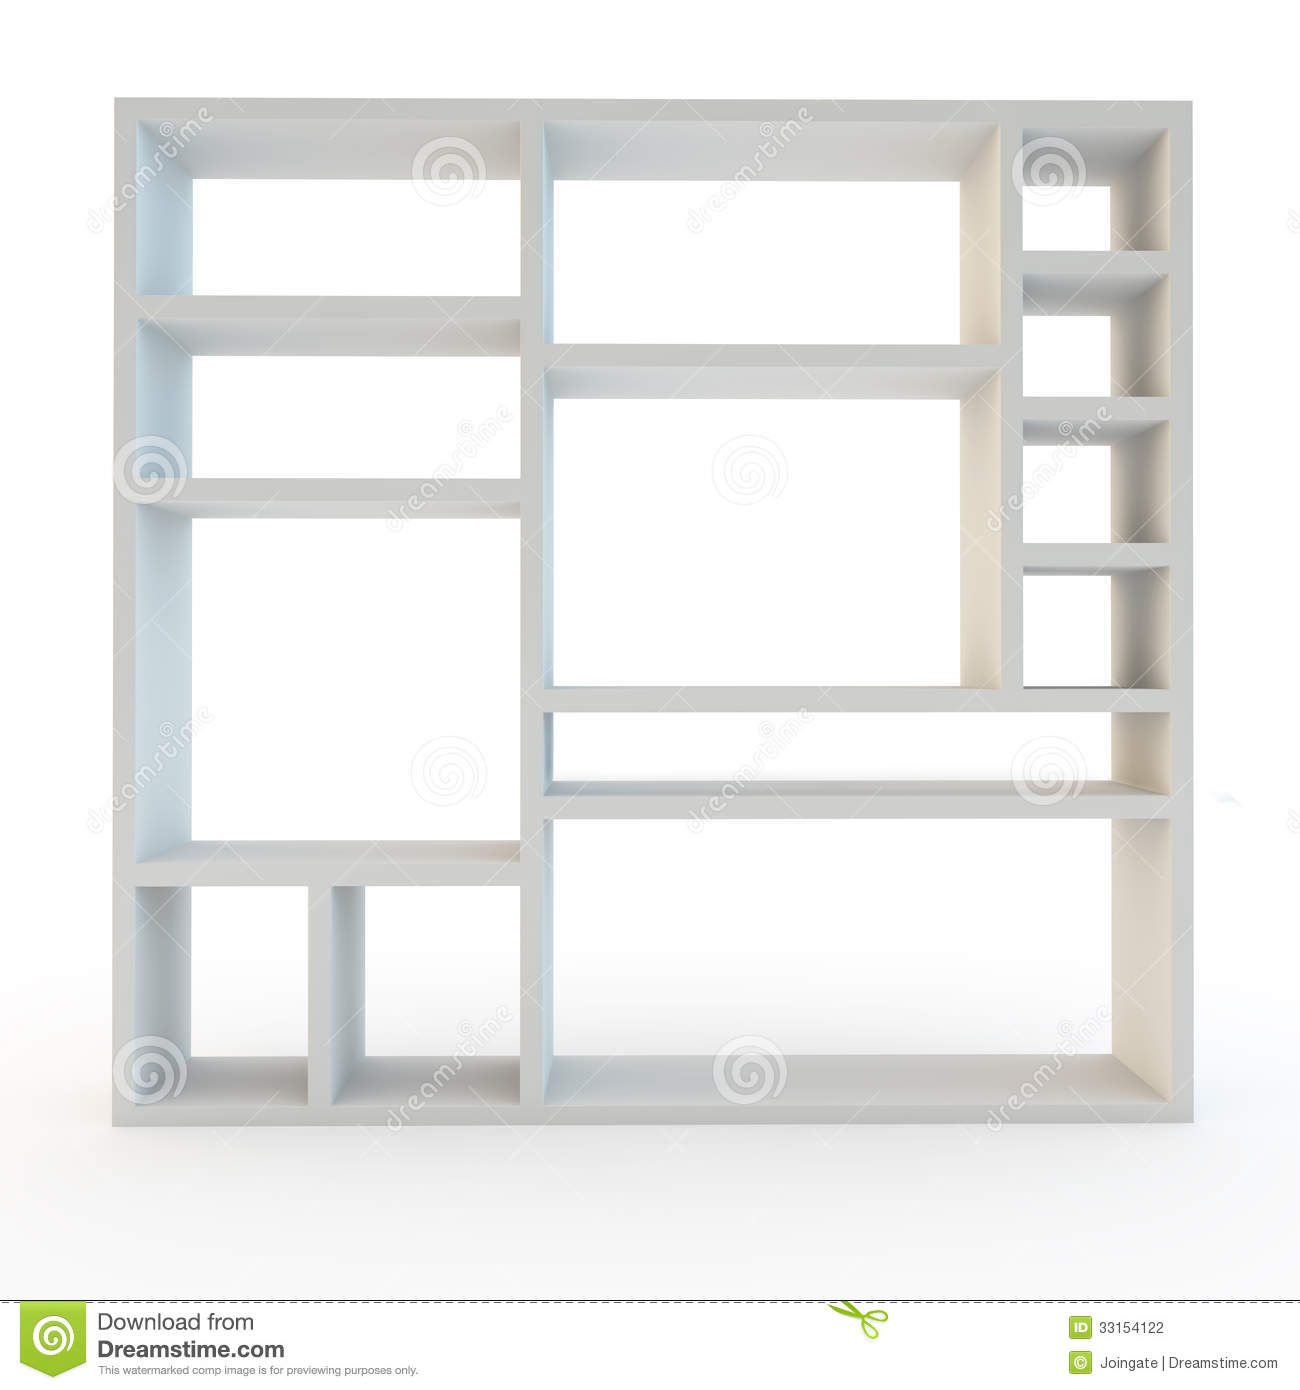 Royalty Free Stock Photo. Download Modern White Laminated Shelving ...